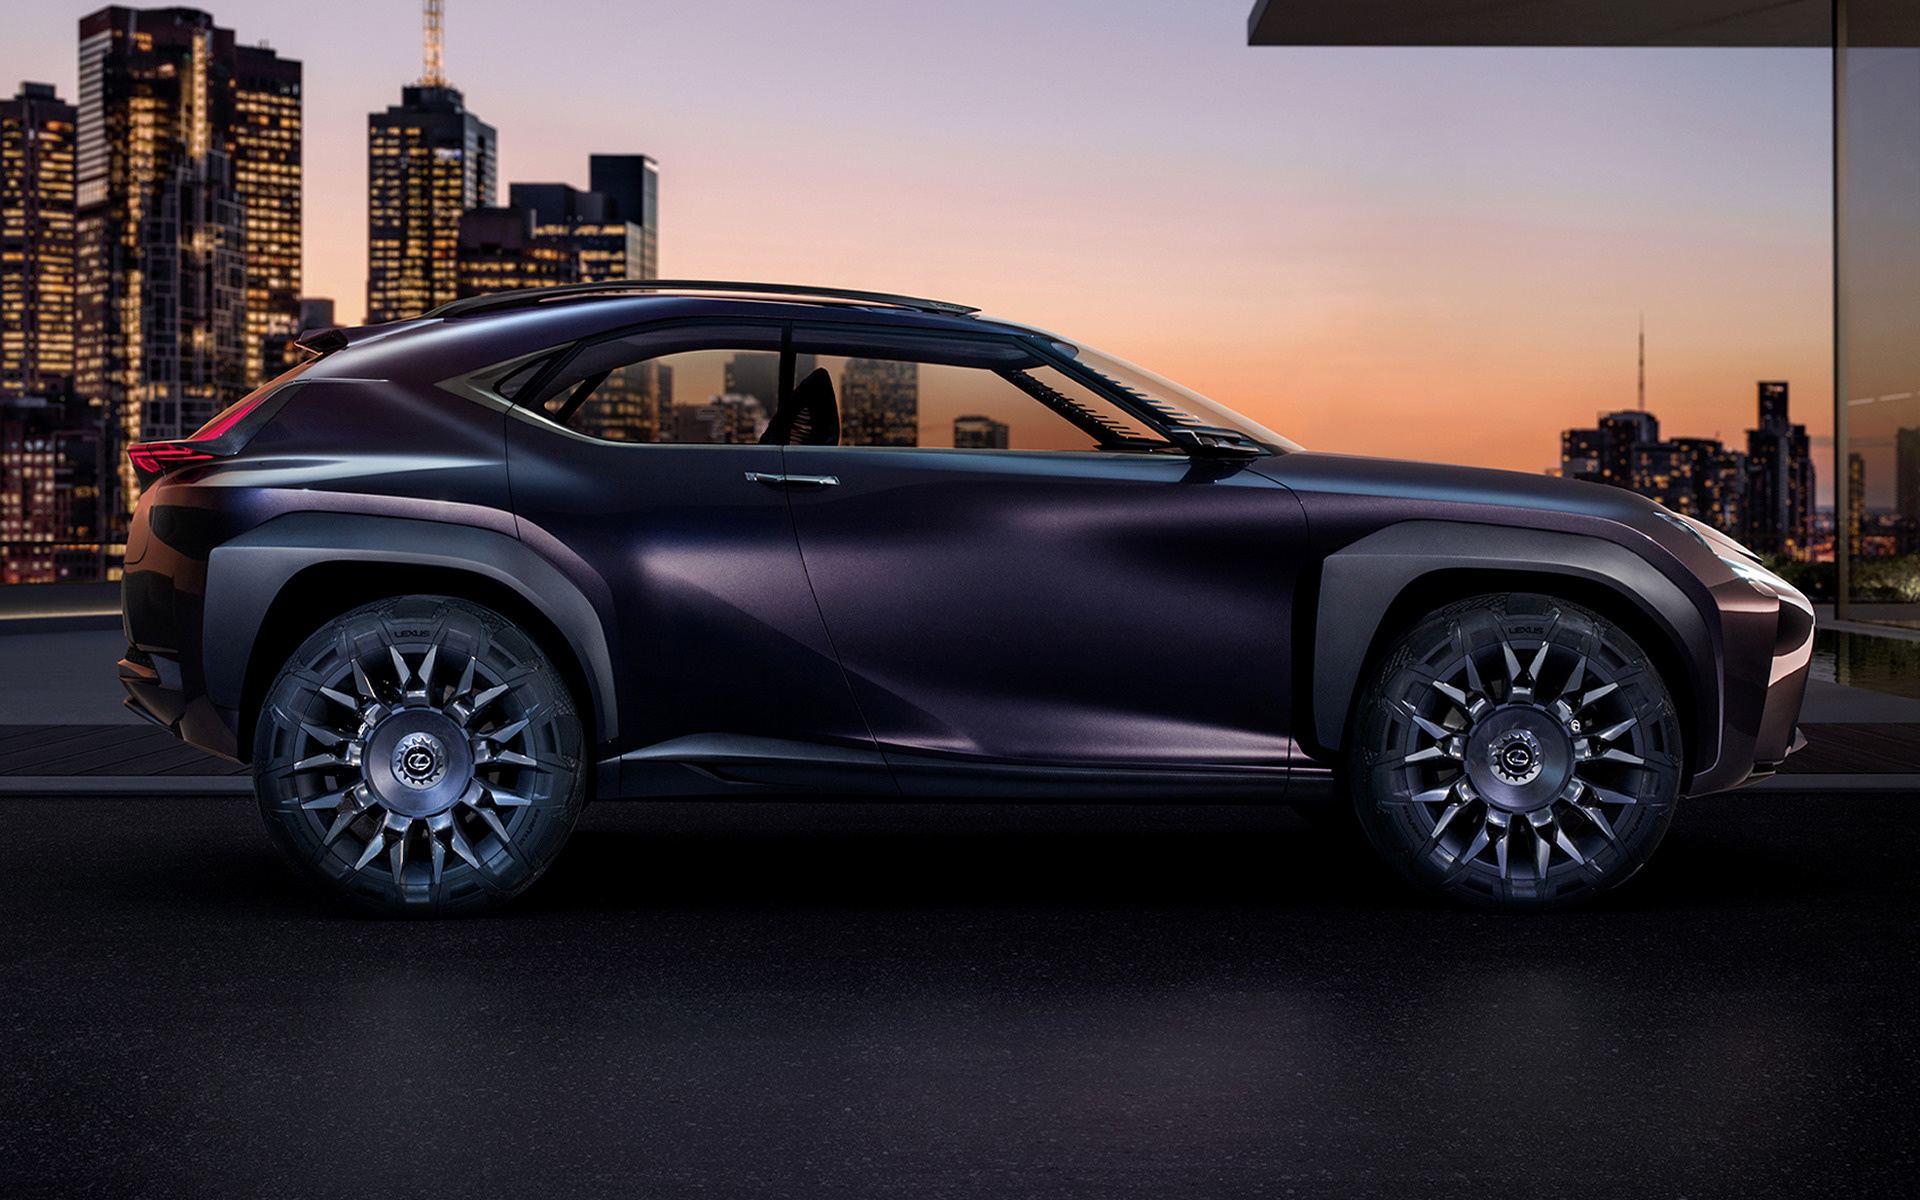 Lexus UX Concept (2016) Wallpapers and HD Images - Car Pixel